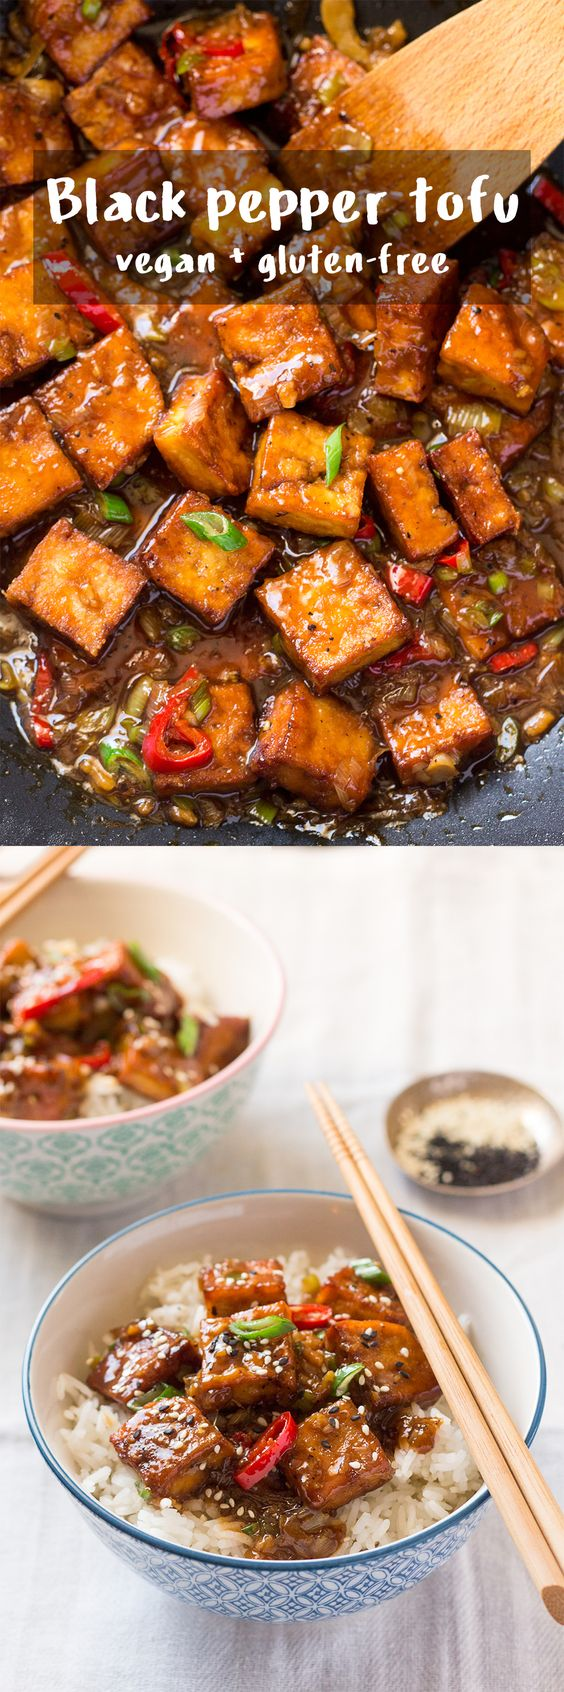 vegan black pepper tofu recipe. looks like a delicious way to add protein to a vegetarian diet!: